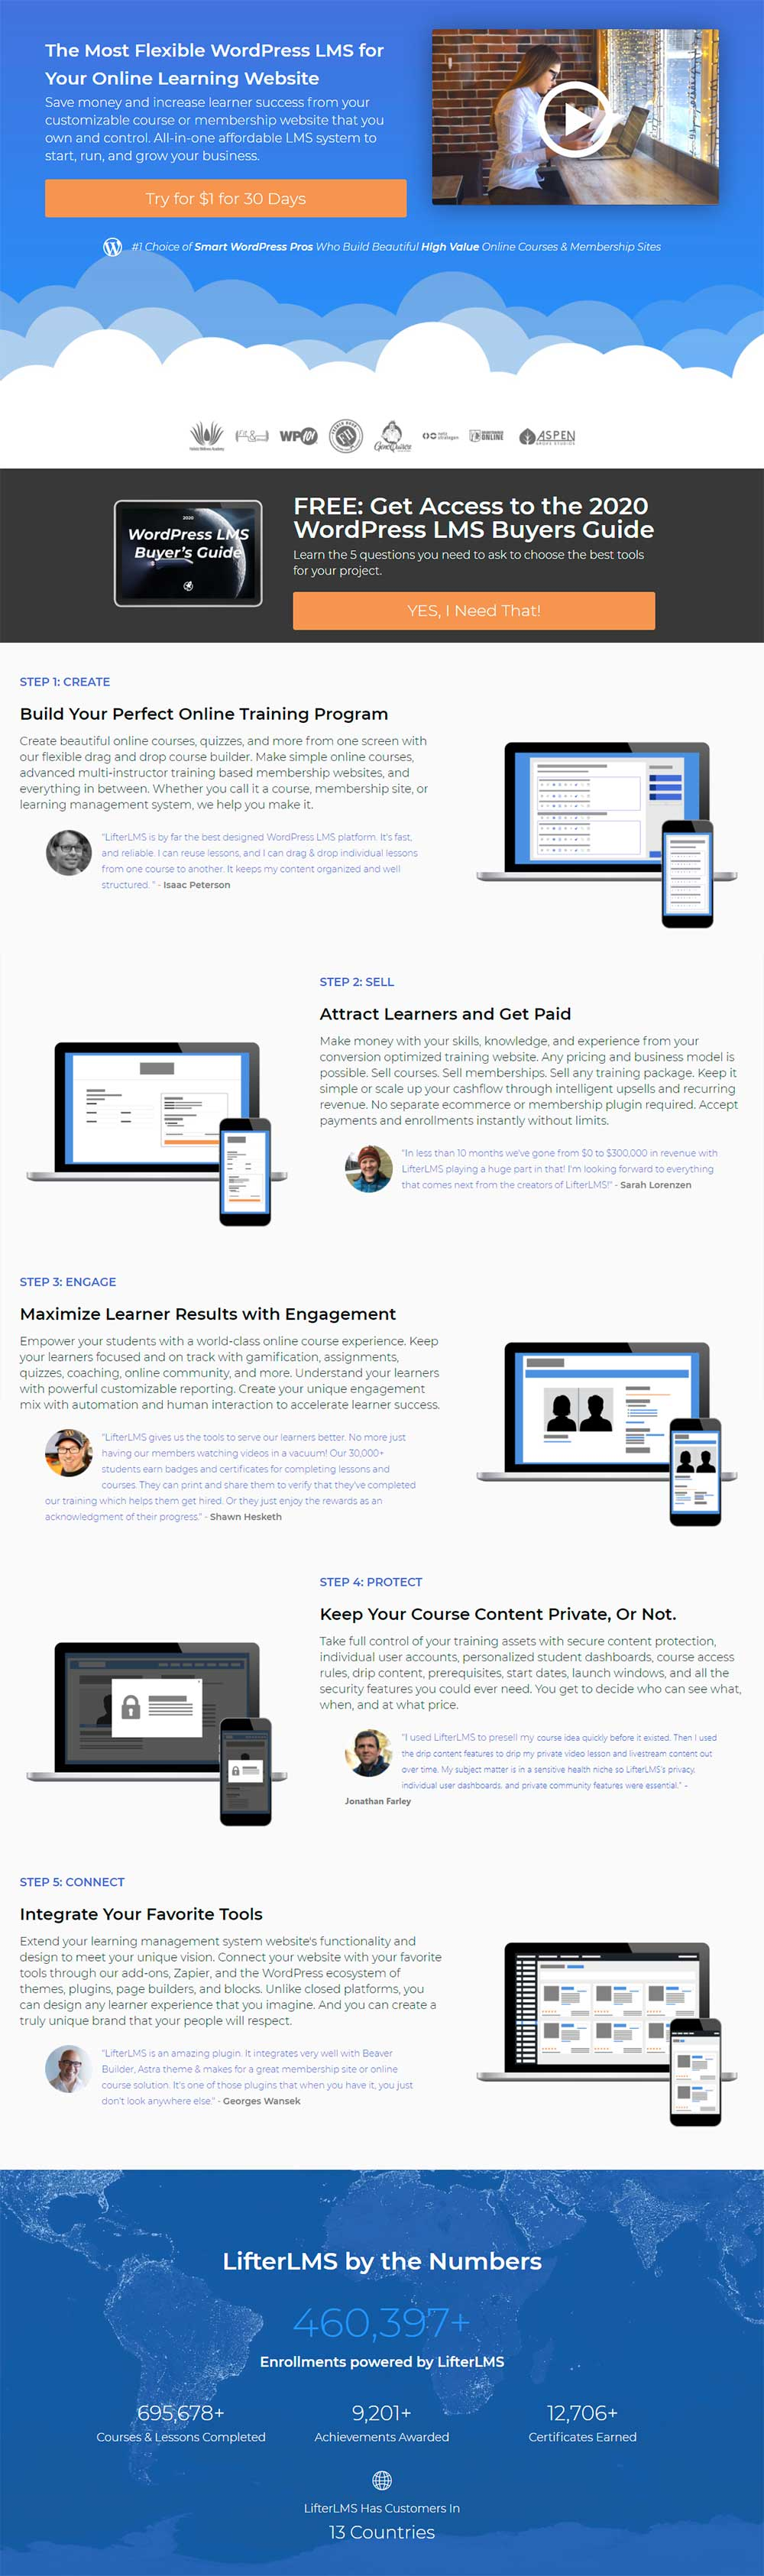 Lifter LMS - WordPress eLearning LMS Plugin